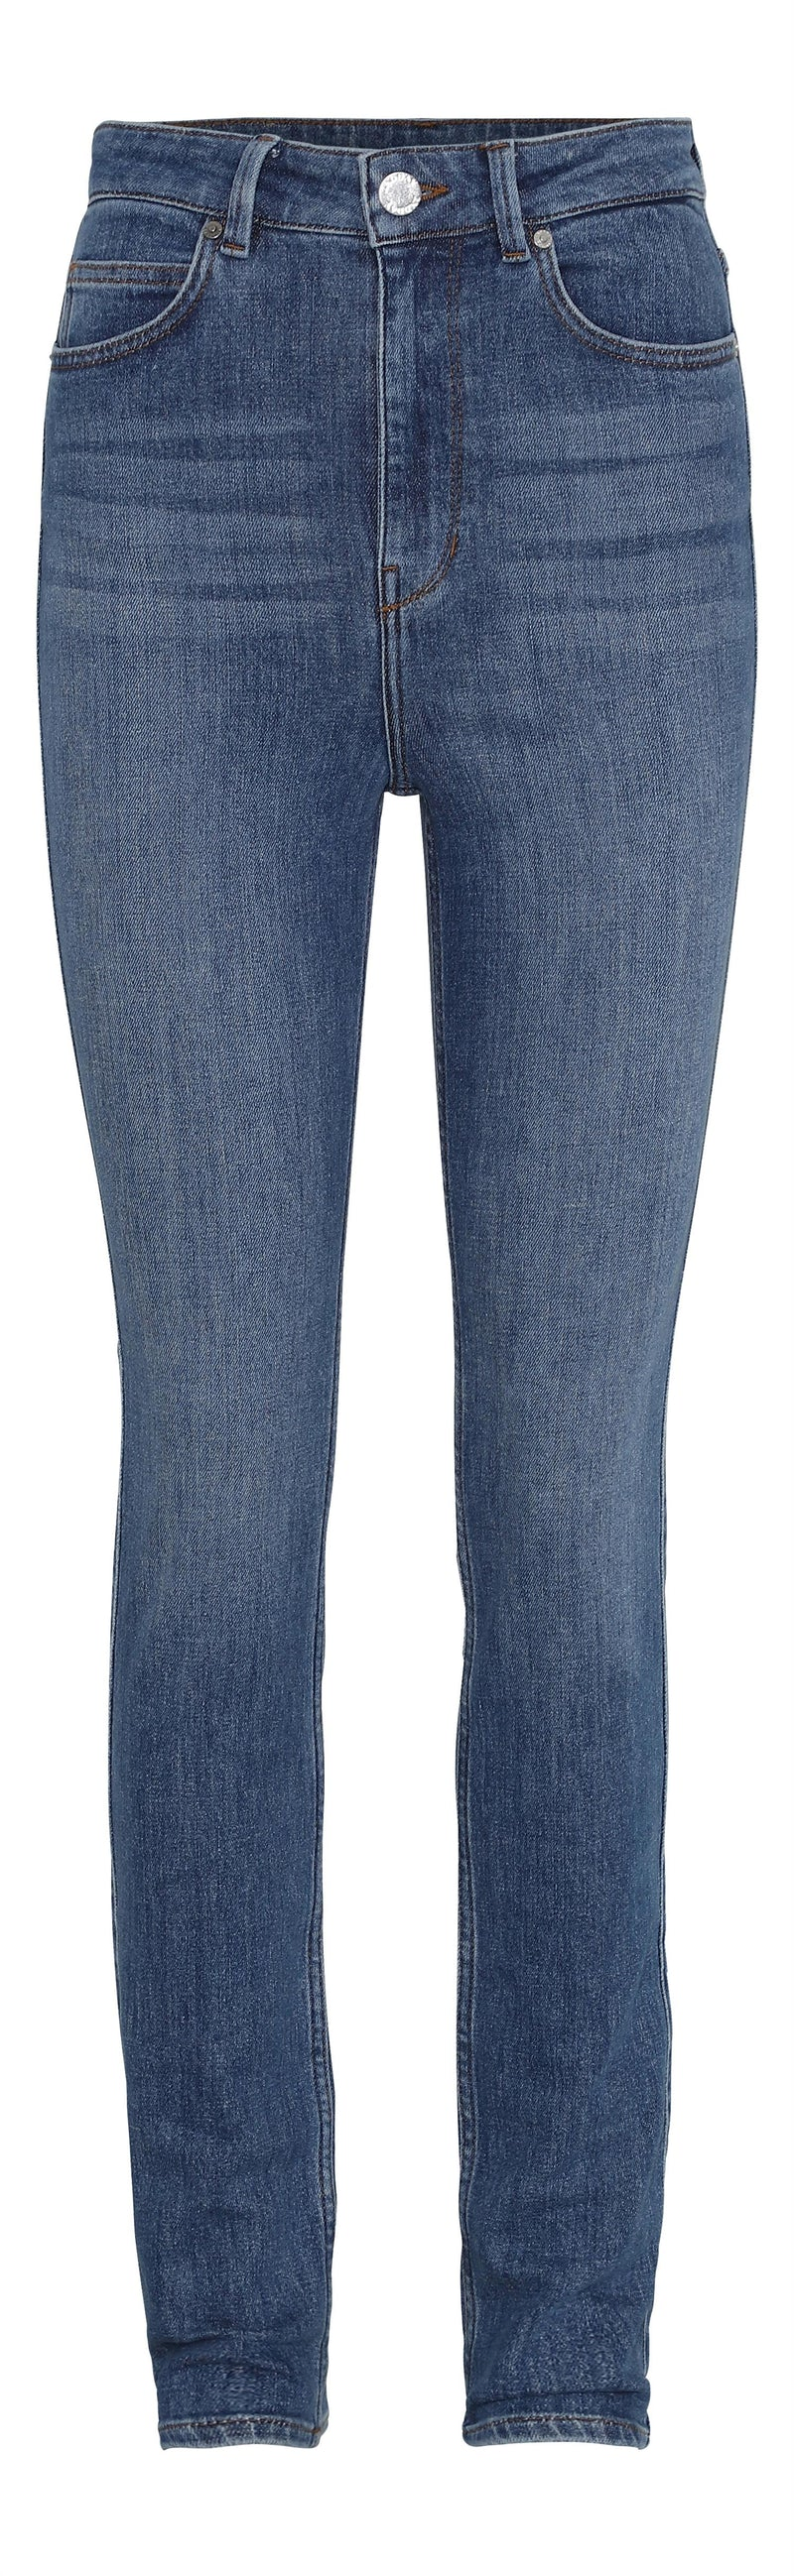 2ND Sadie ThinkTwice Jeans